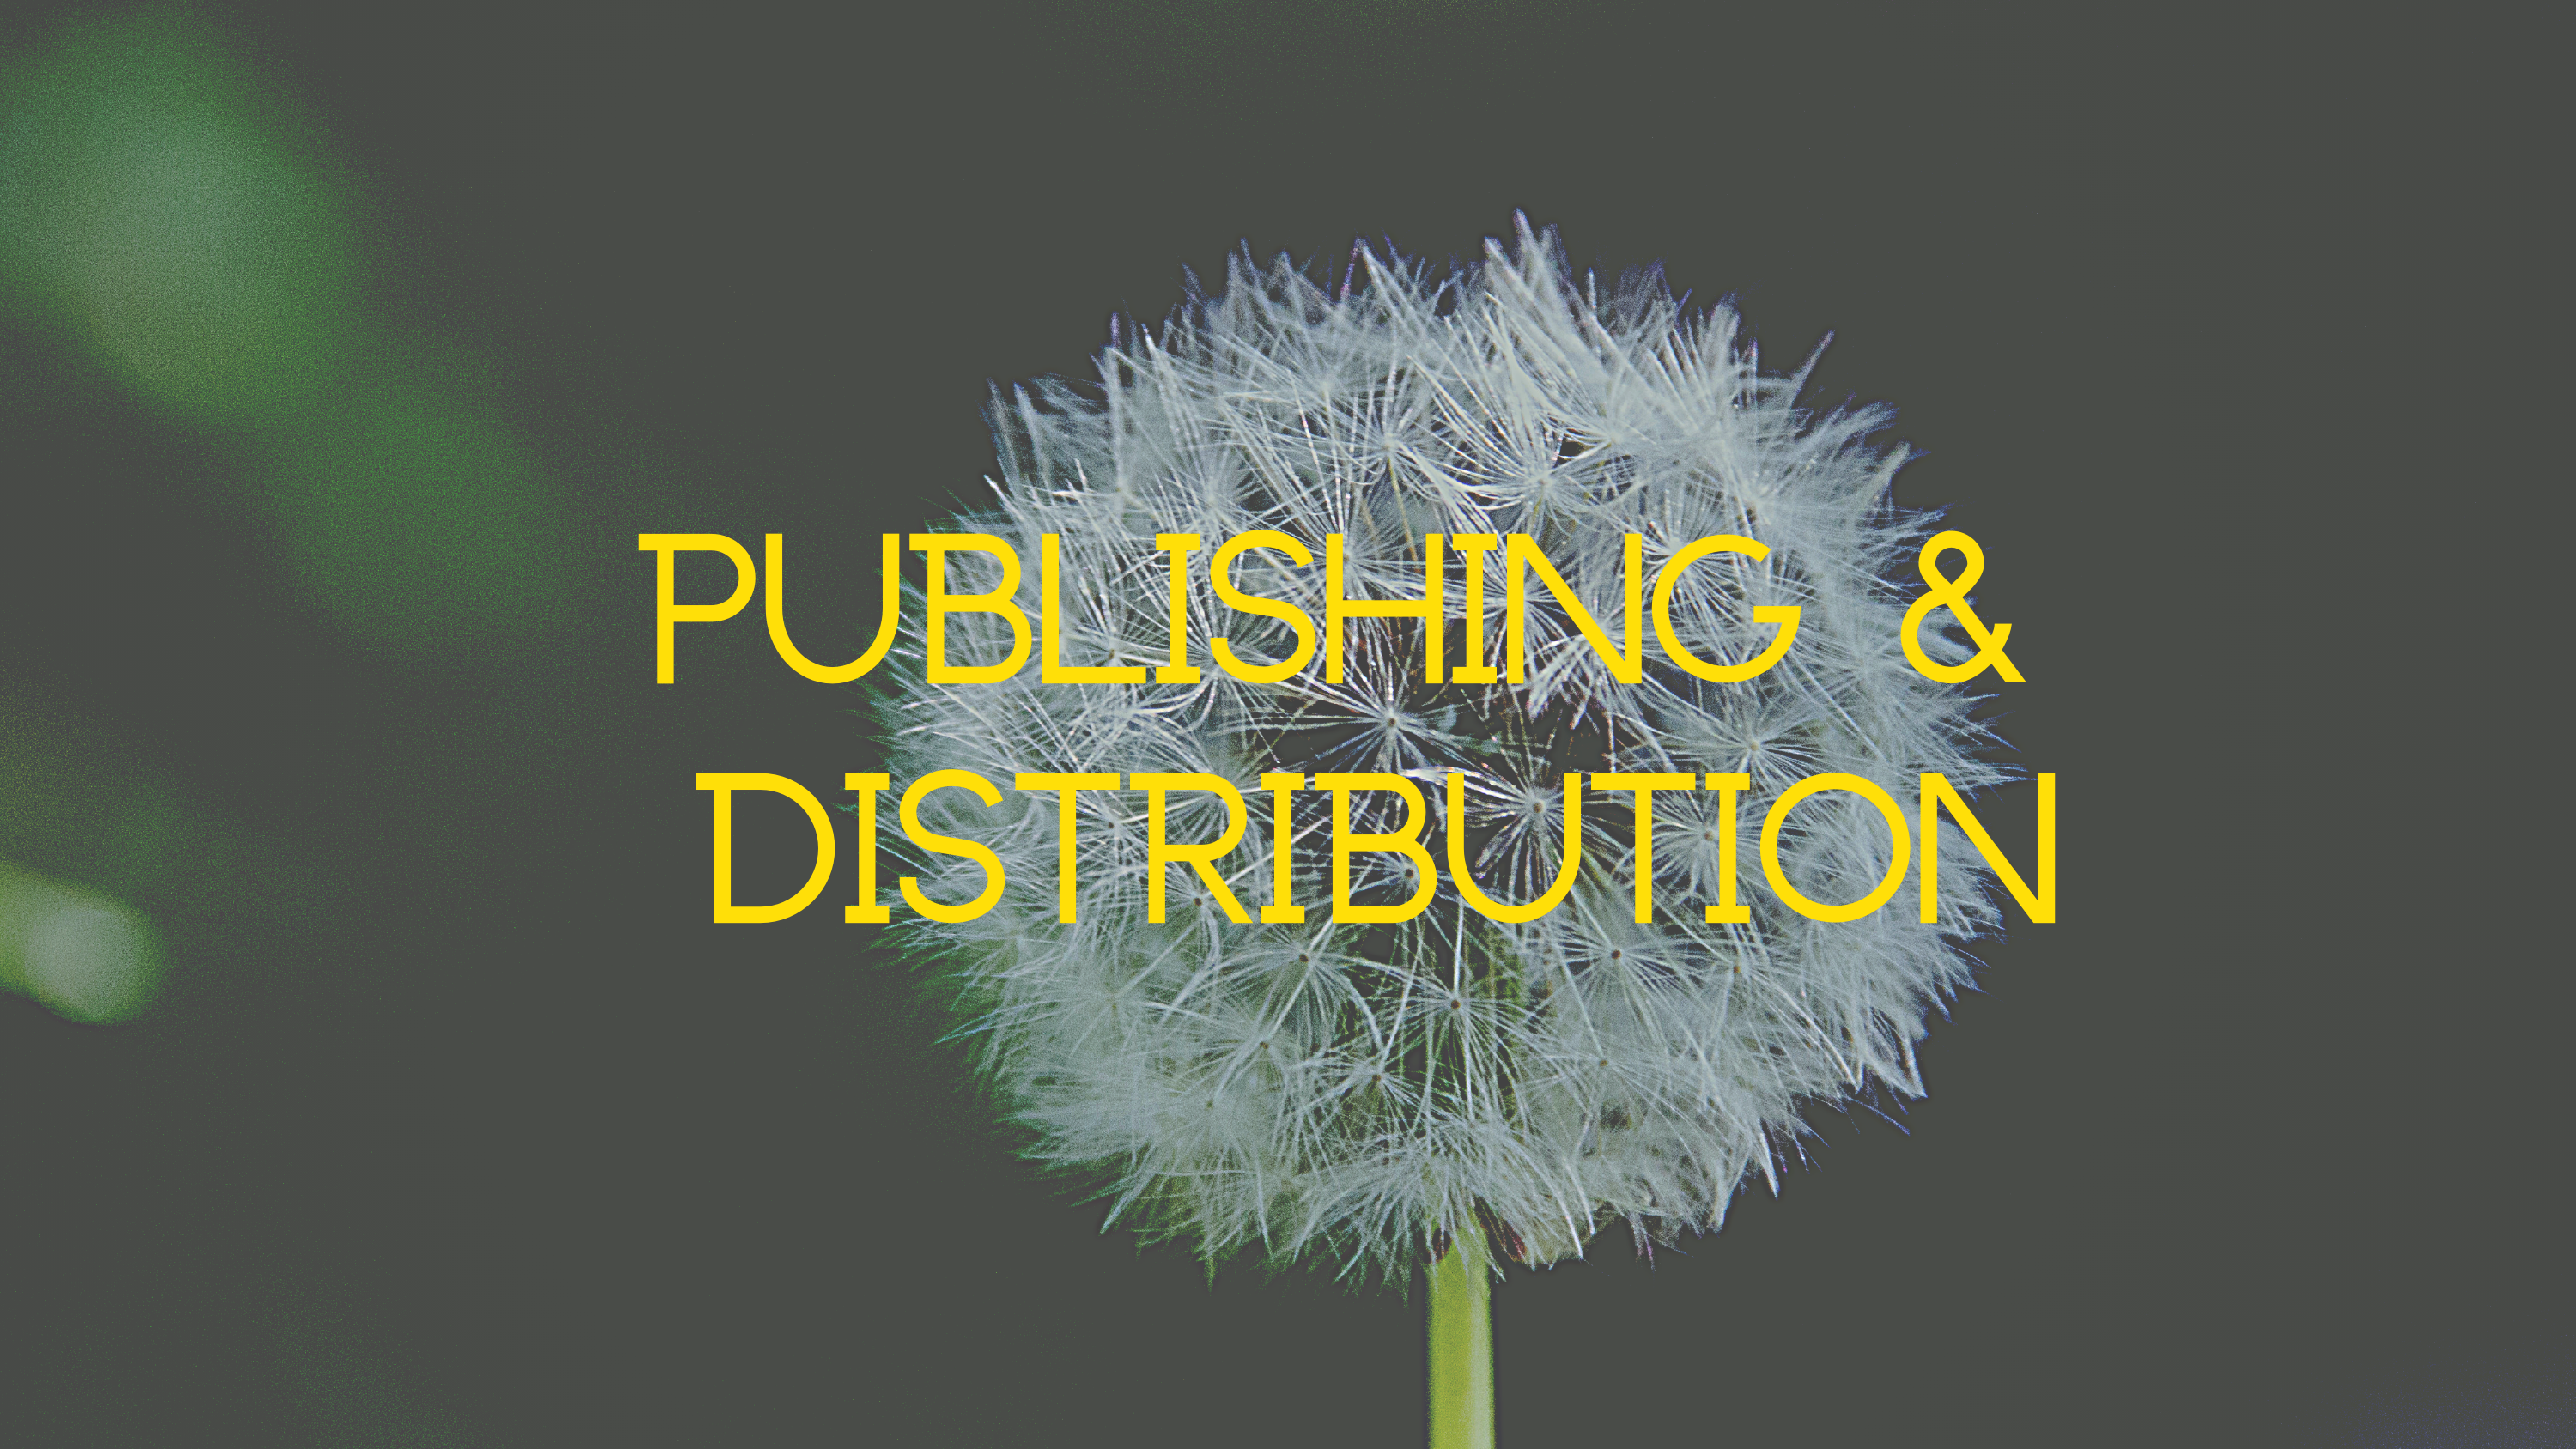 Publishing & Distribution